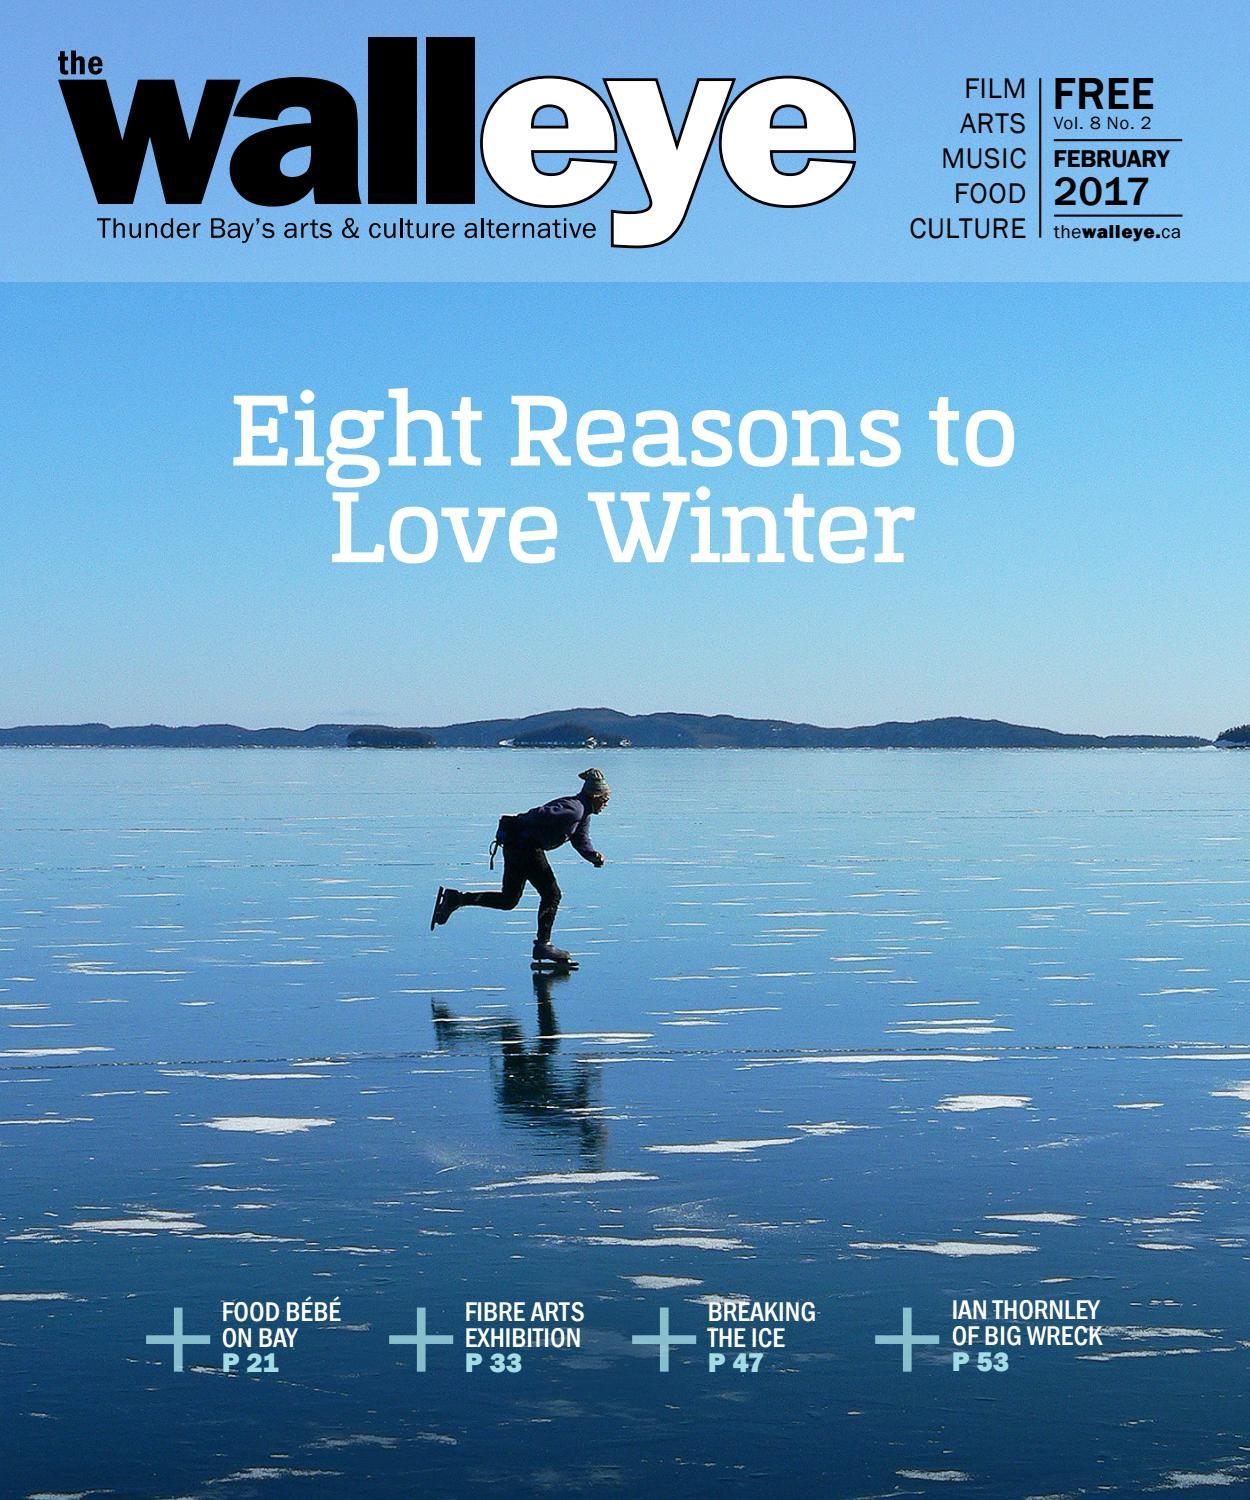 Lit Rond Bebe Génial February 2017 by the Walleye Magazine issuu